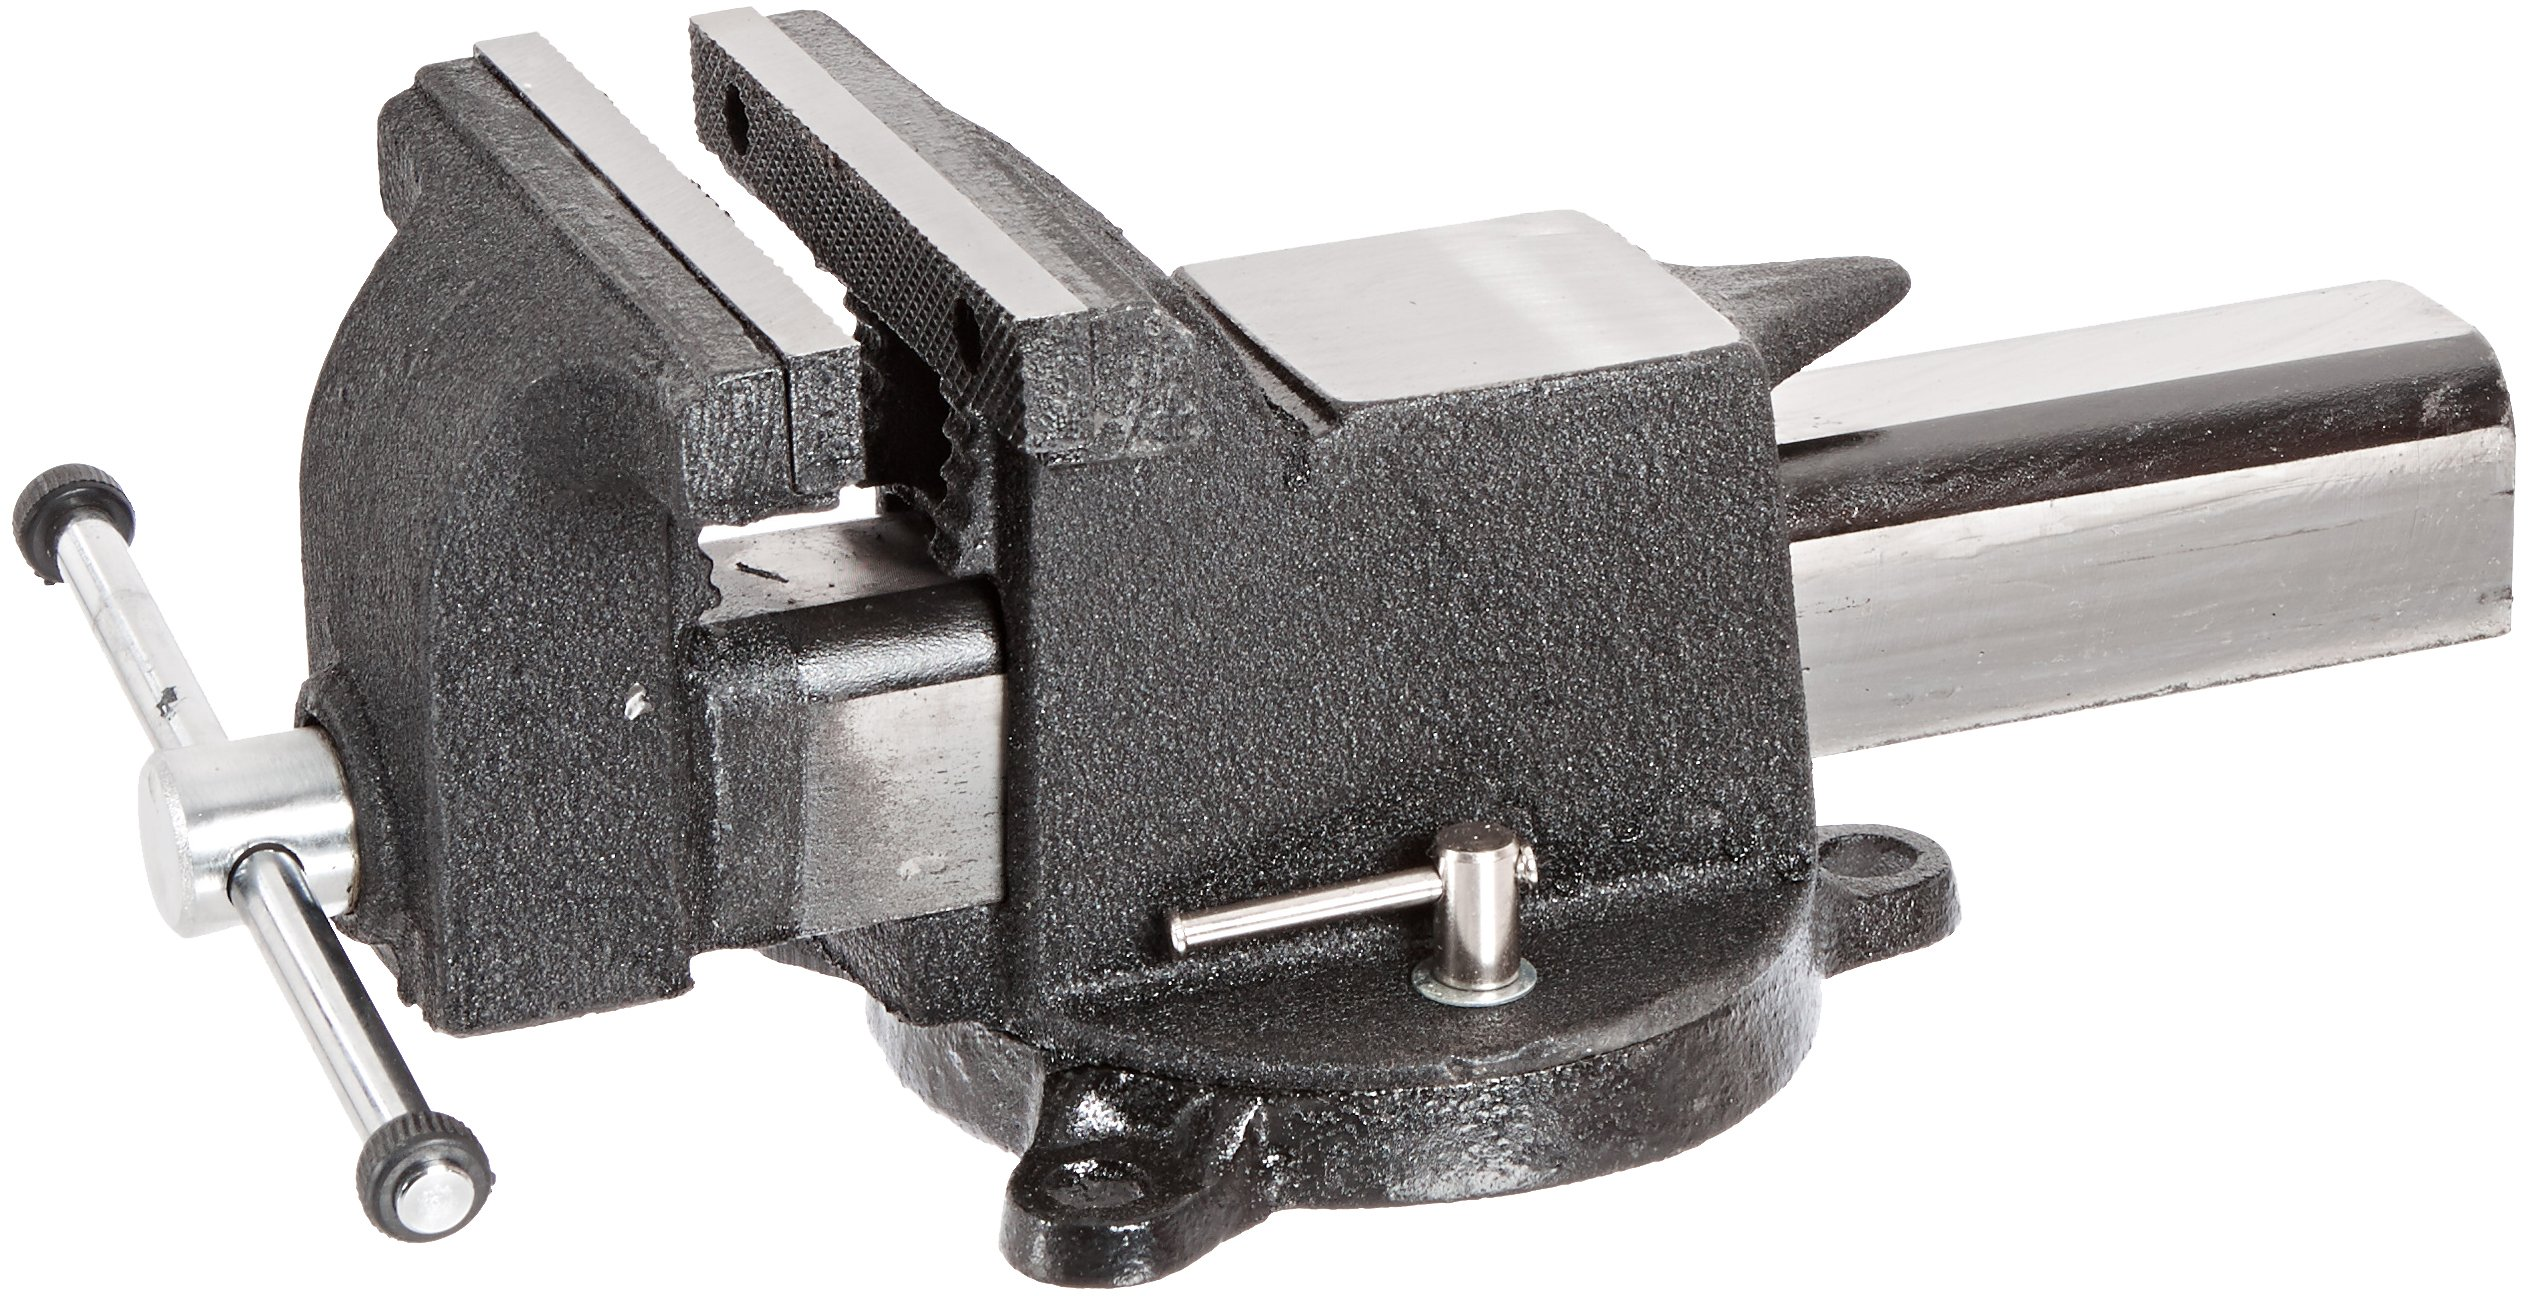 Yost Vises 936-AS 6'' All-Steel Combination Pipe and Bench Vise with 360-Degree Swivel Base by Yost Tools